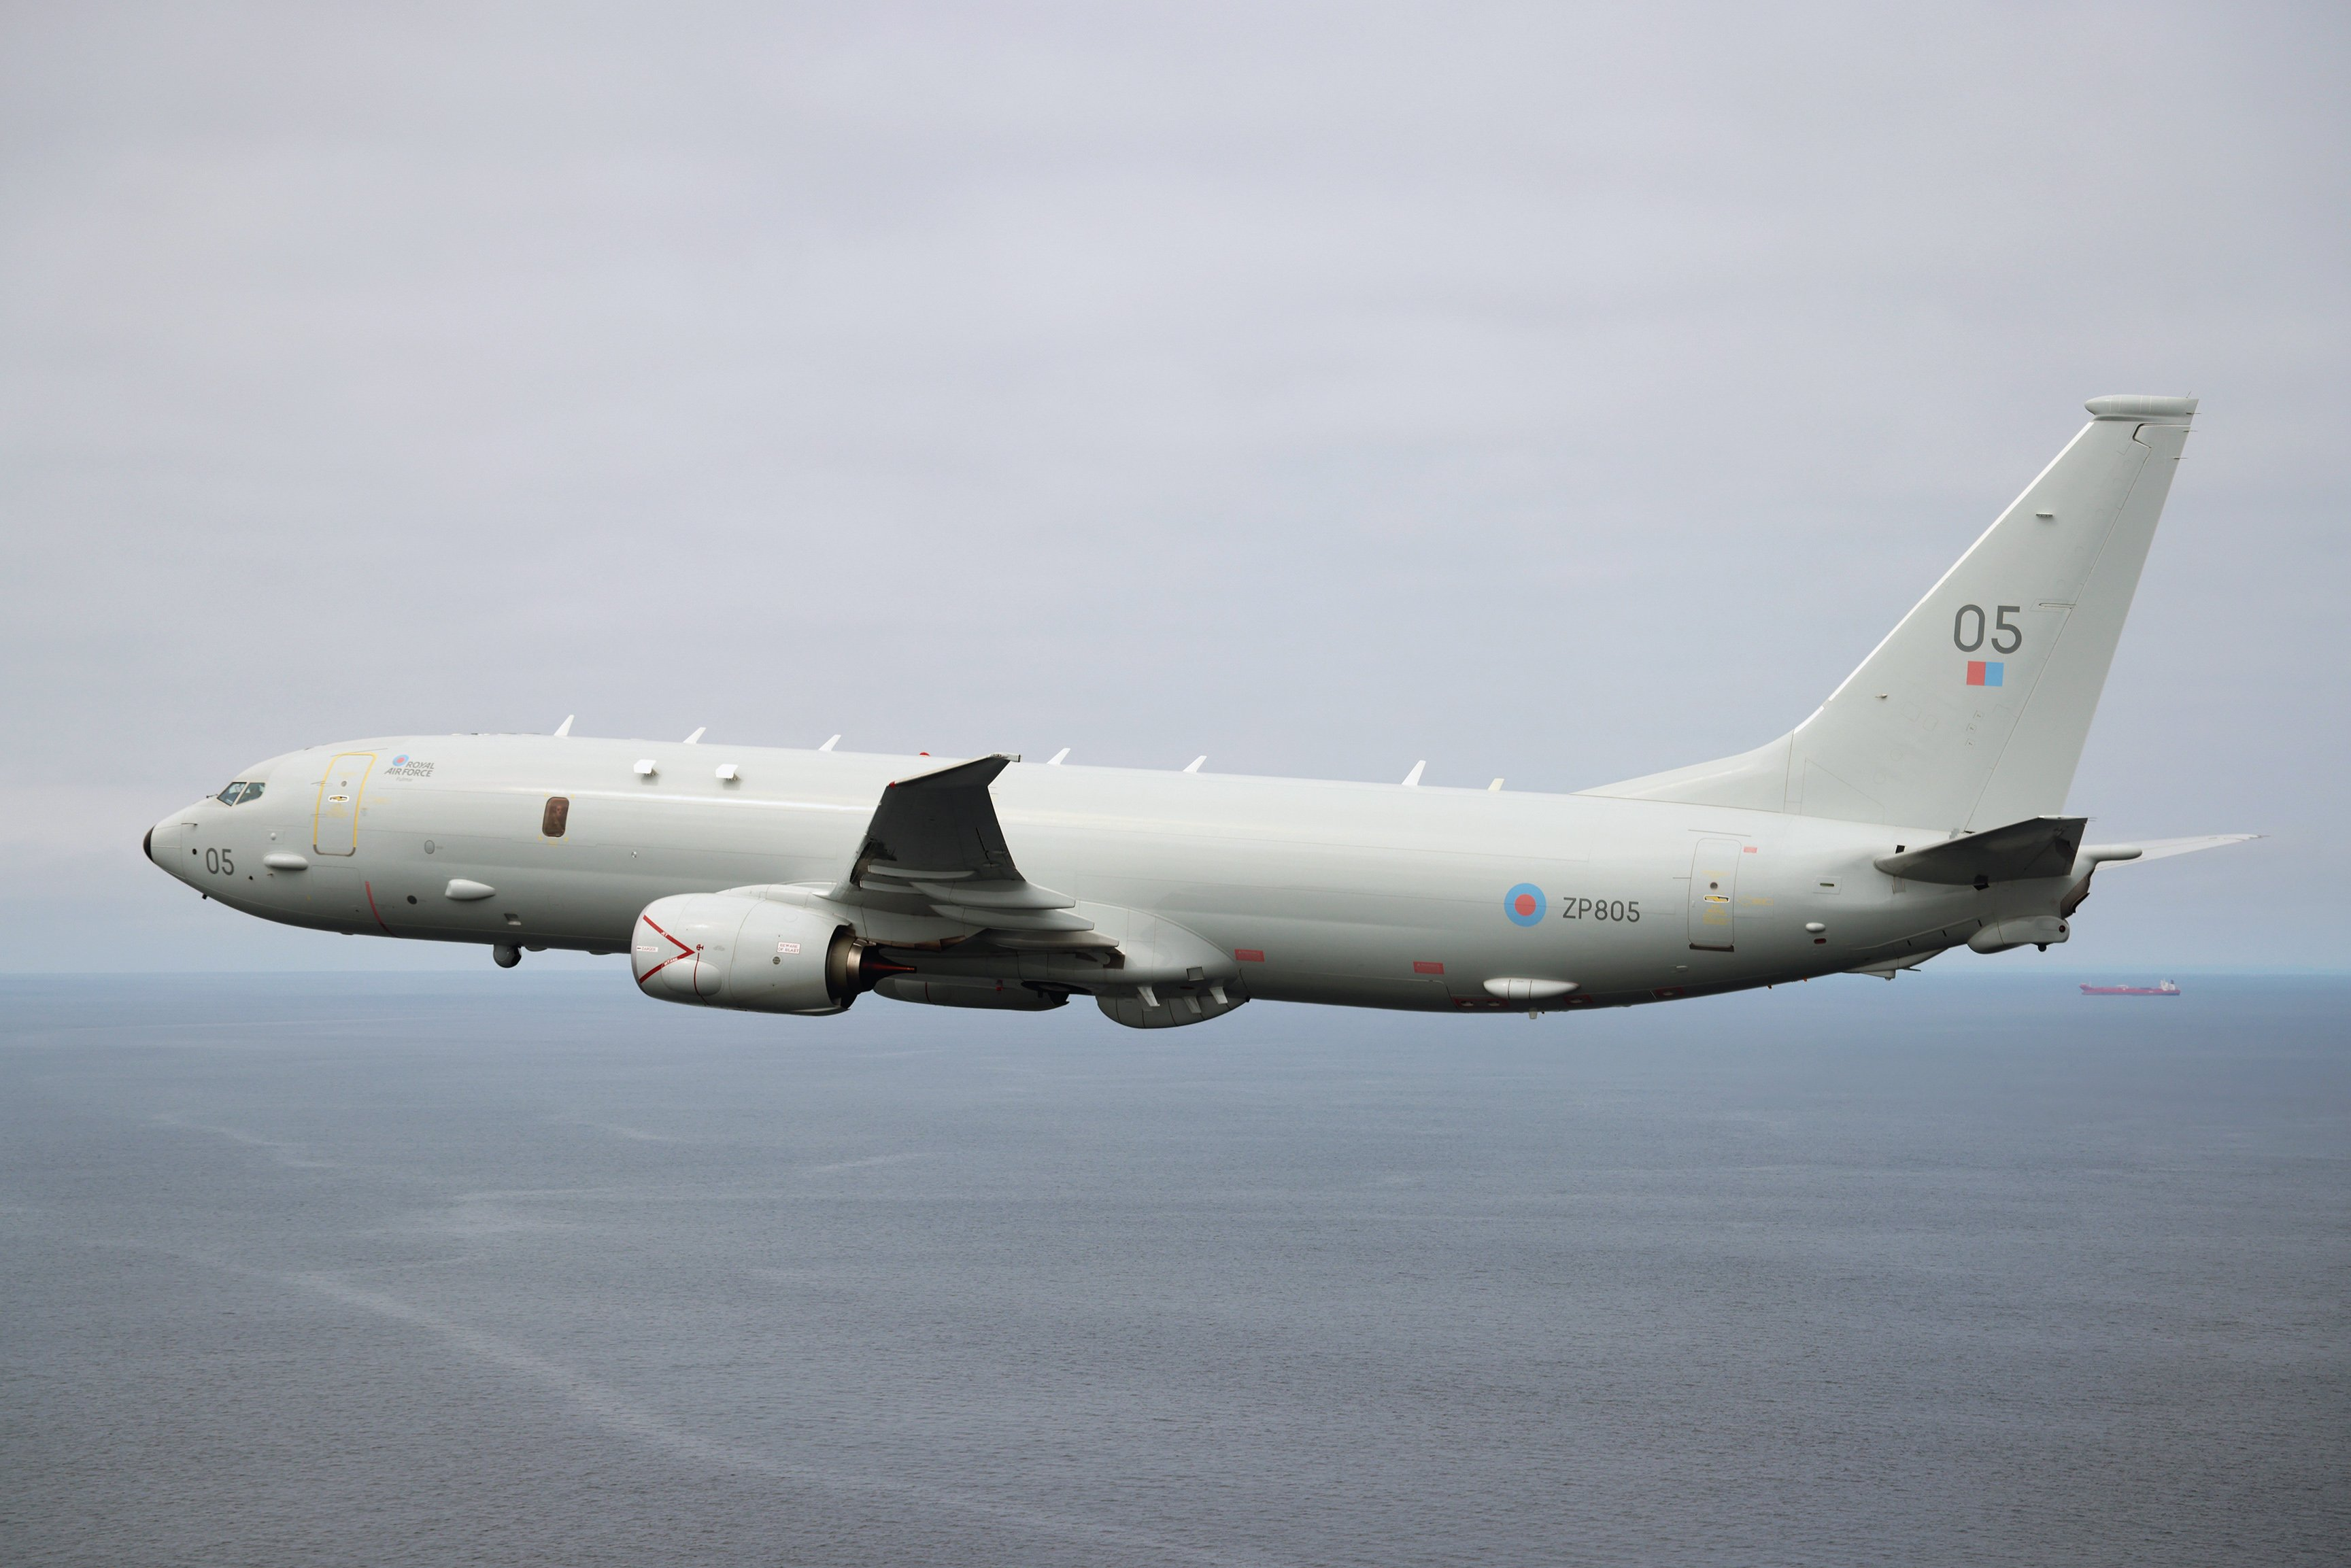 The UK has ordered nine Boeing Poseidon maritime patrol aircraft, with six delivered so far. UK MOD © Crown copyright 2021/Cpl Adam Fletcher